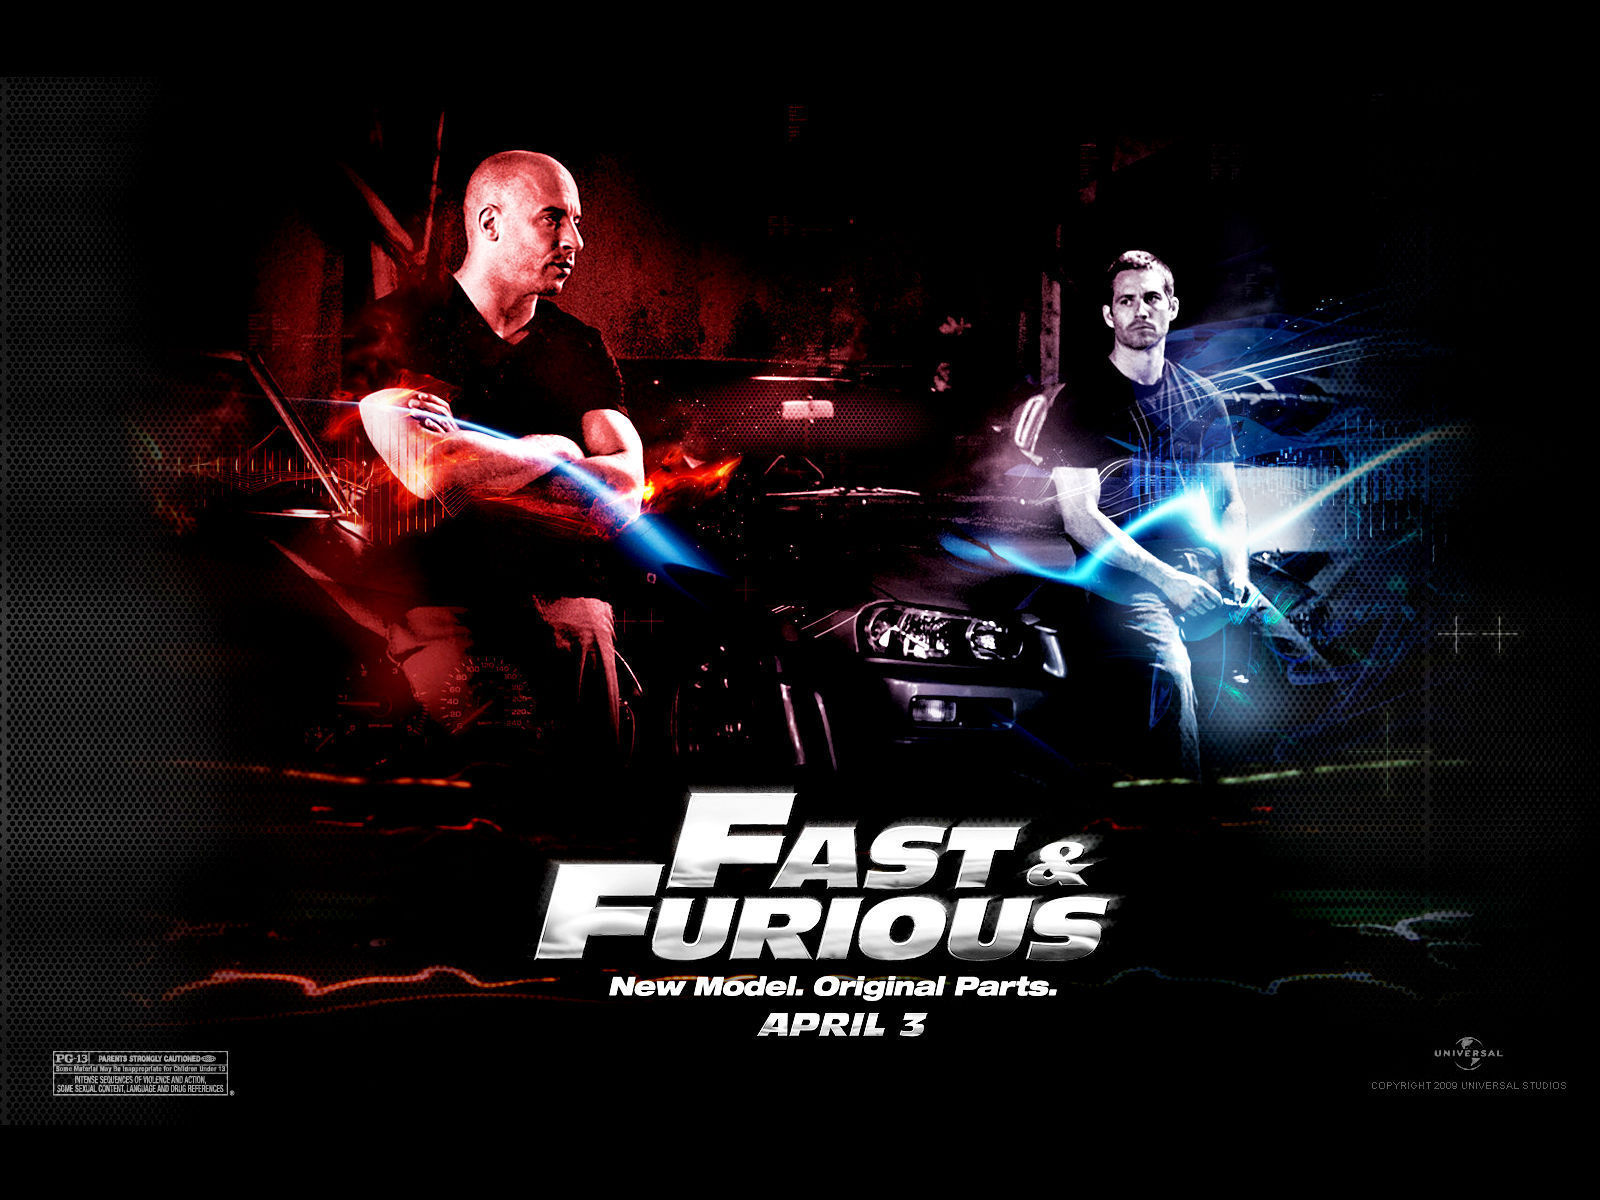 fast furious upcoming movies wallpaper 5012469 fanpop. Black Bedroom Furniture Sets. Home Design Ideas